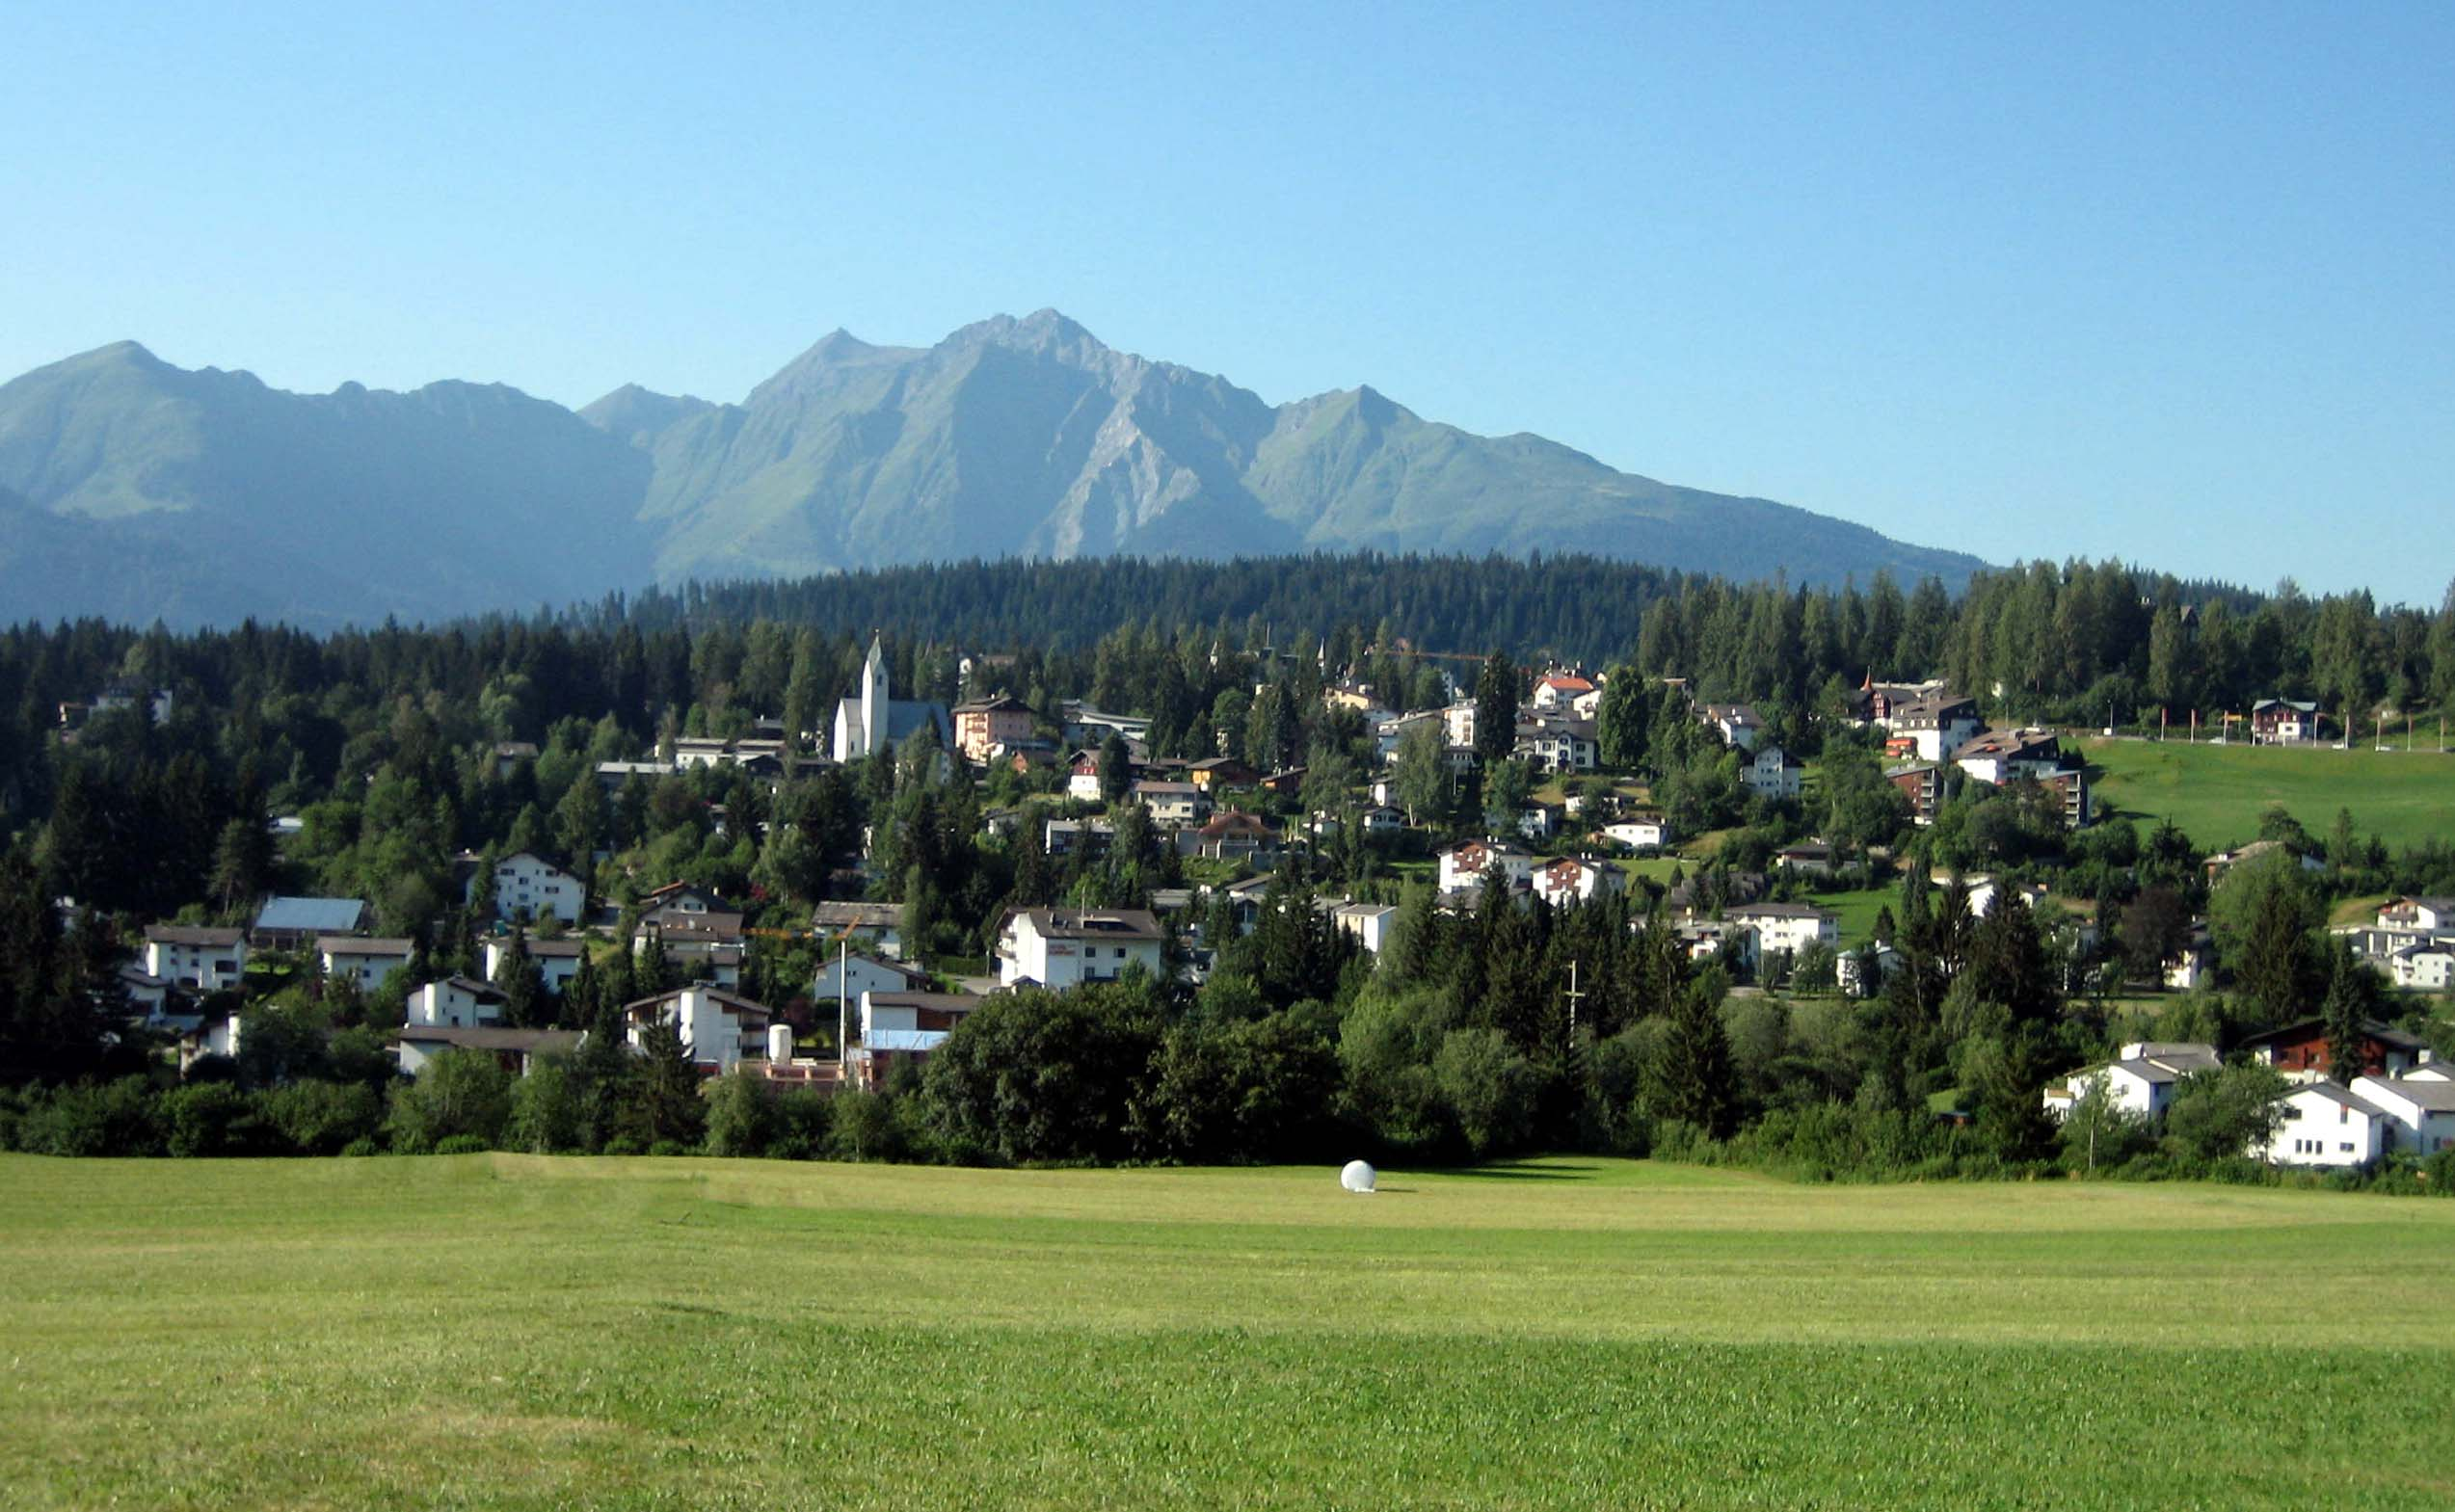 Flims Switzerland  city pictures gallery : Flims Waldhaus Wikipedia, the free encyclopedia